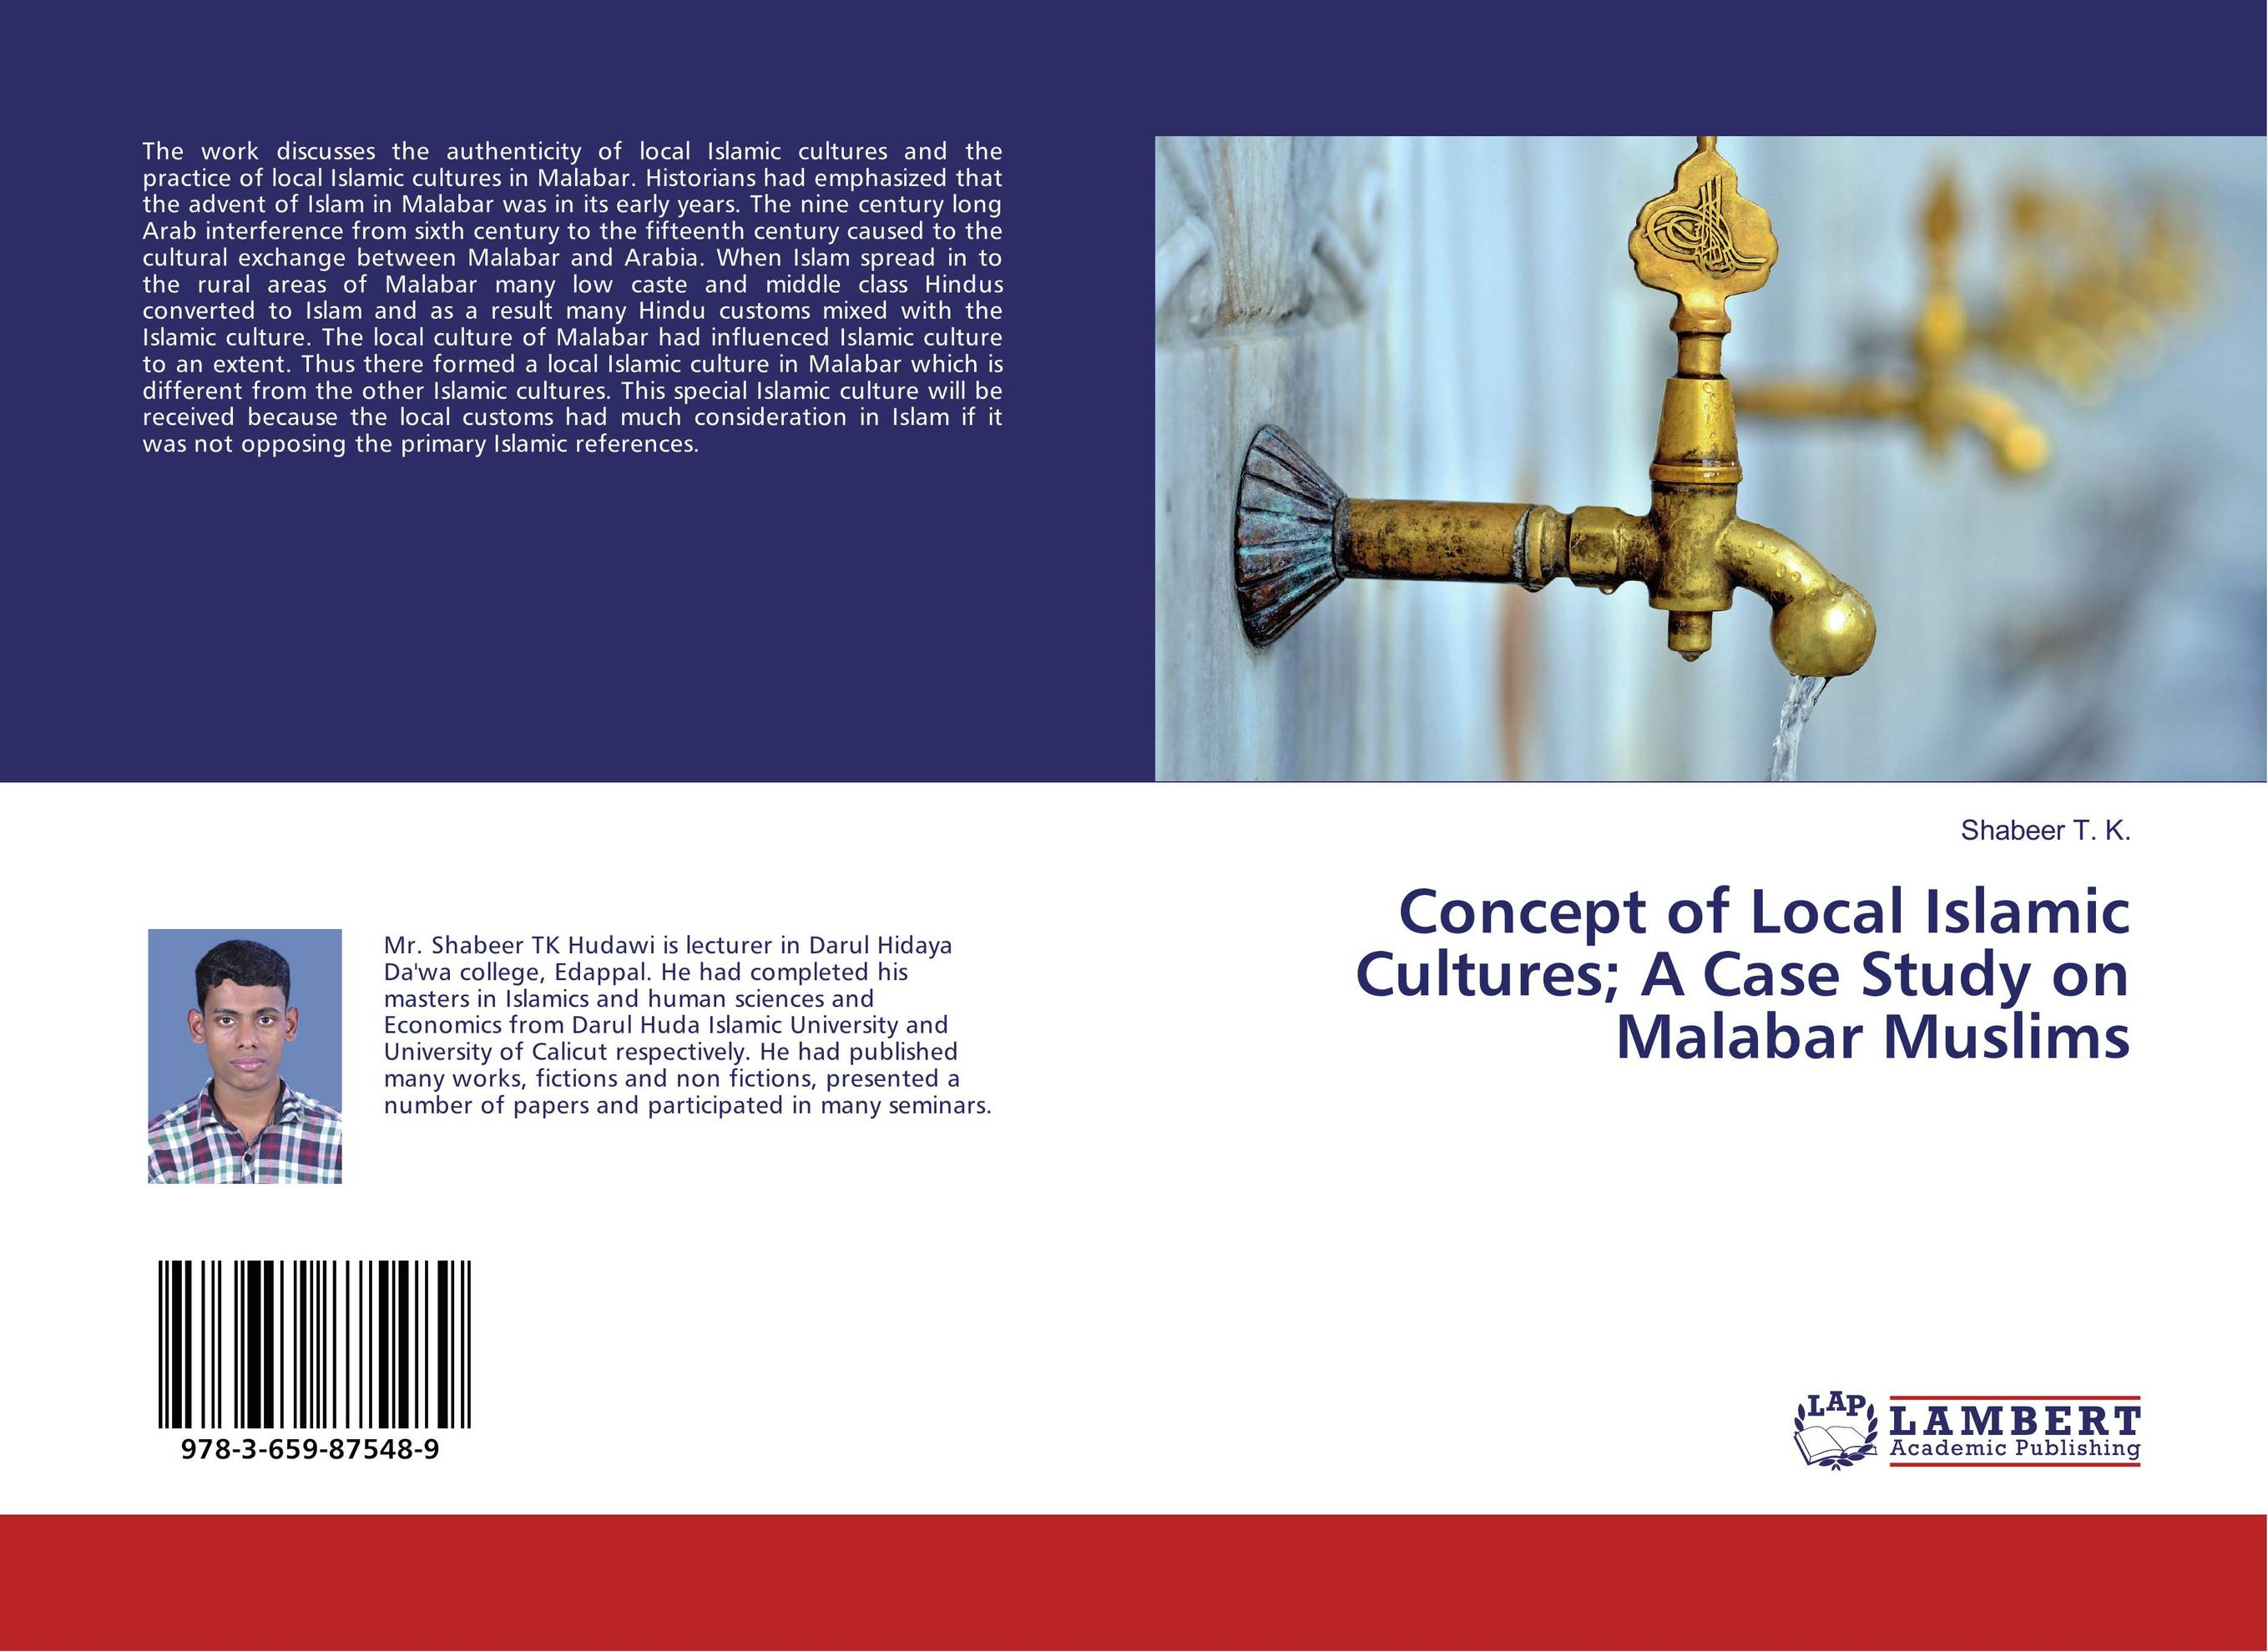 Concept of Local Islamic Cultures; A Case Study on Malabar Muslims как еще героя в cultures